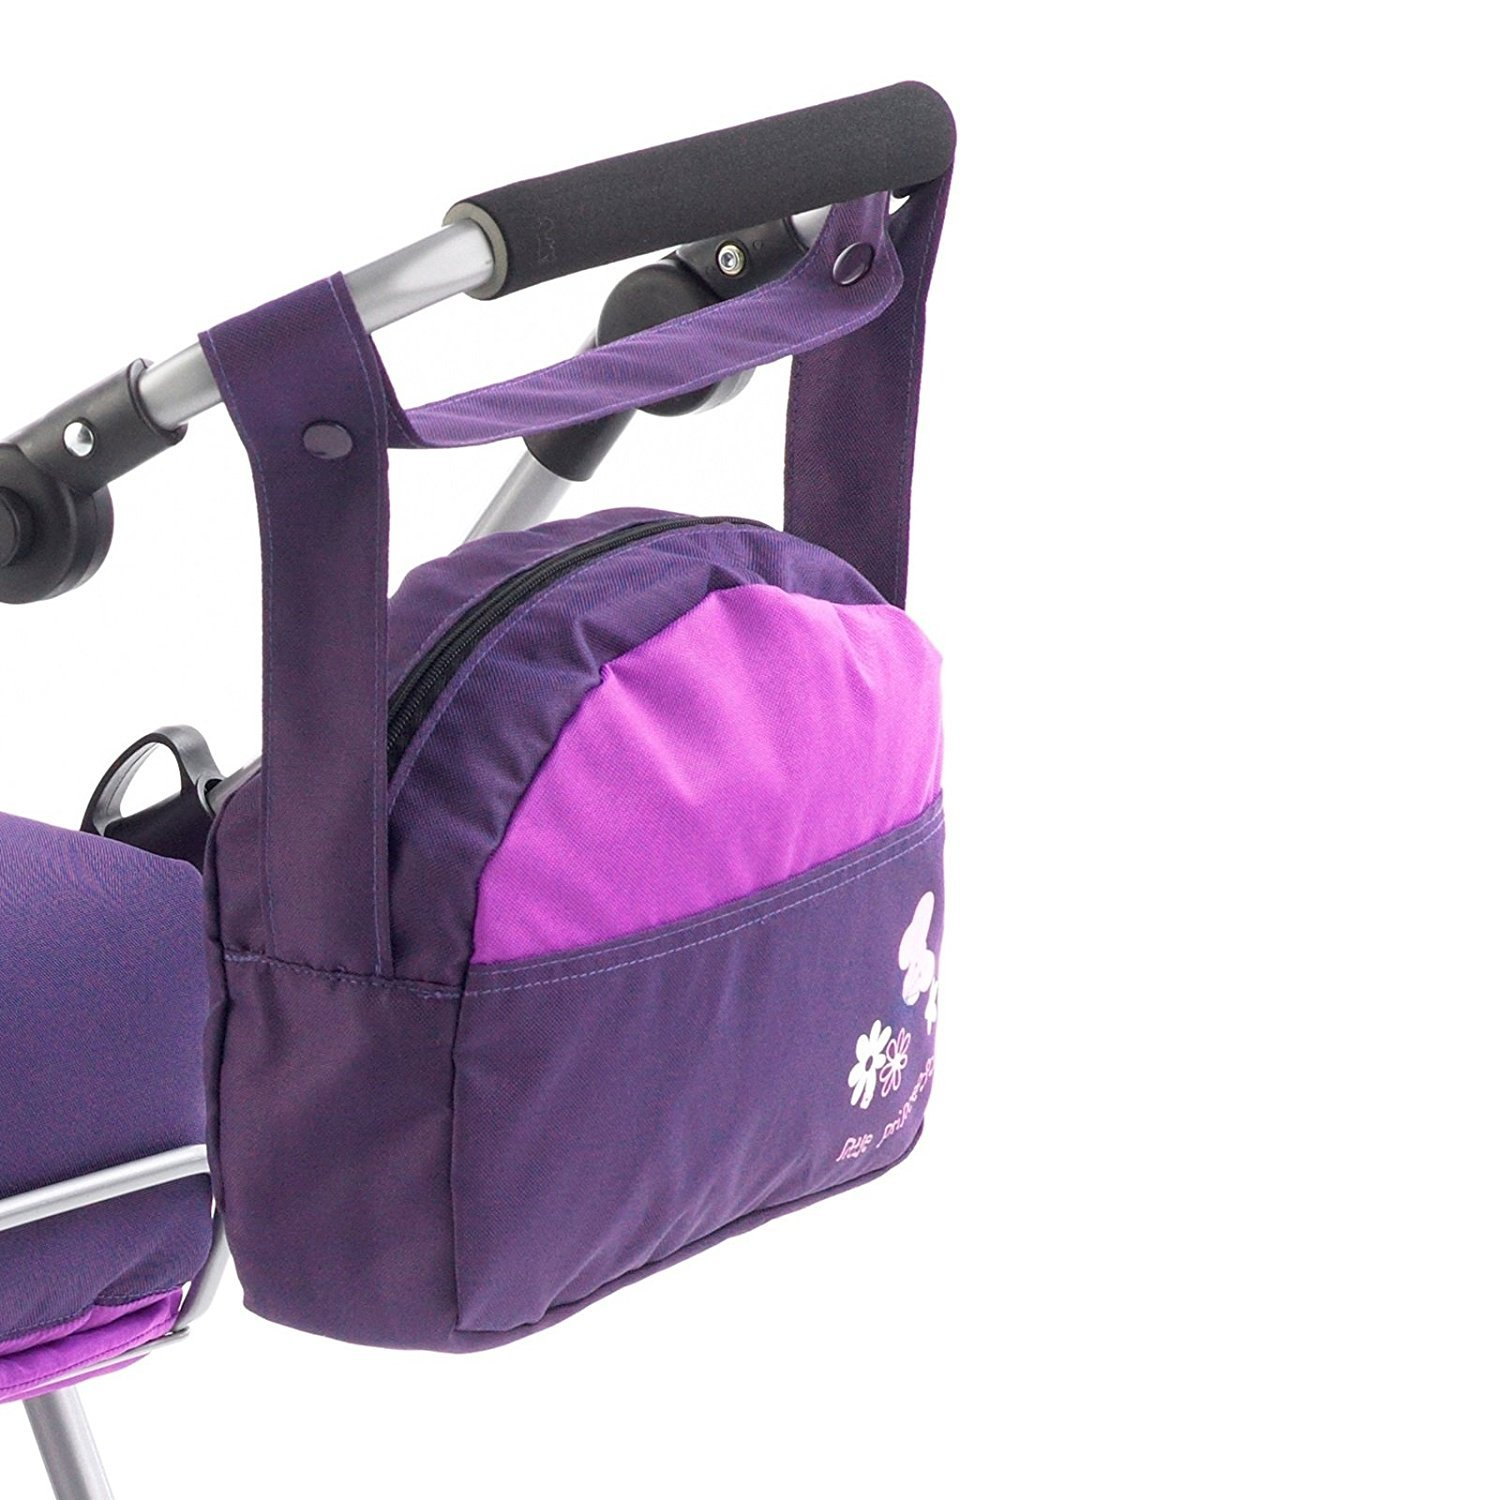 Bayer Chic 2000 853 25 Nappy bag (Plum)